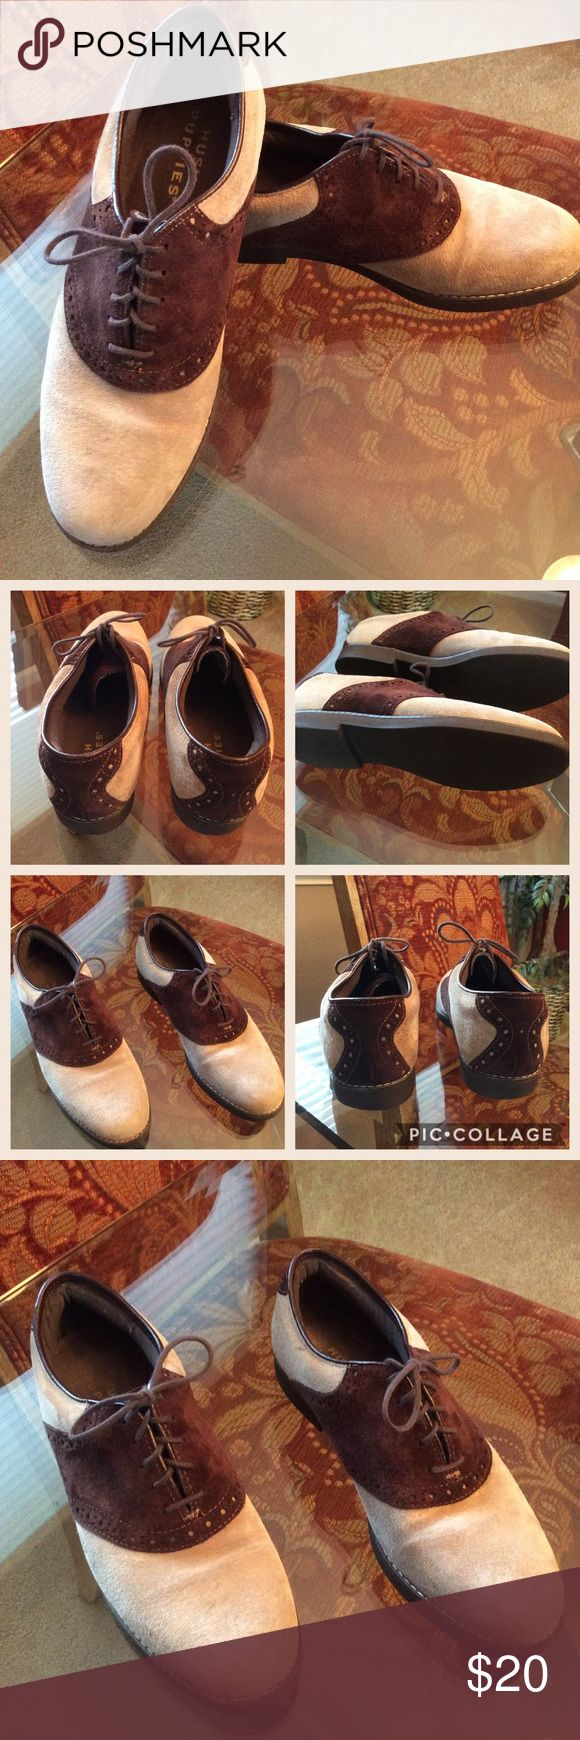 Suede Laced Oxfords Suede lace-up oxfords. Great condition. Minimal wear. Leather/Suede upper. Rubber sole. No box but will be packed with care. Hush Puppies Shoes Flats & Loafers